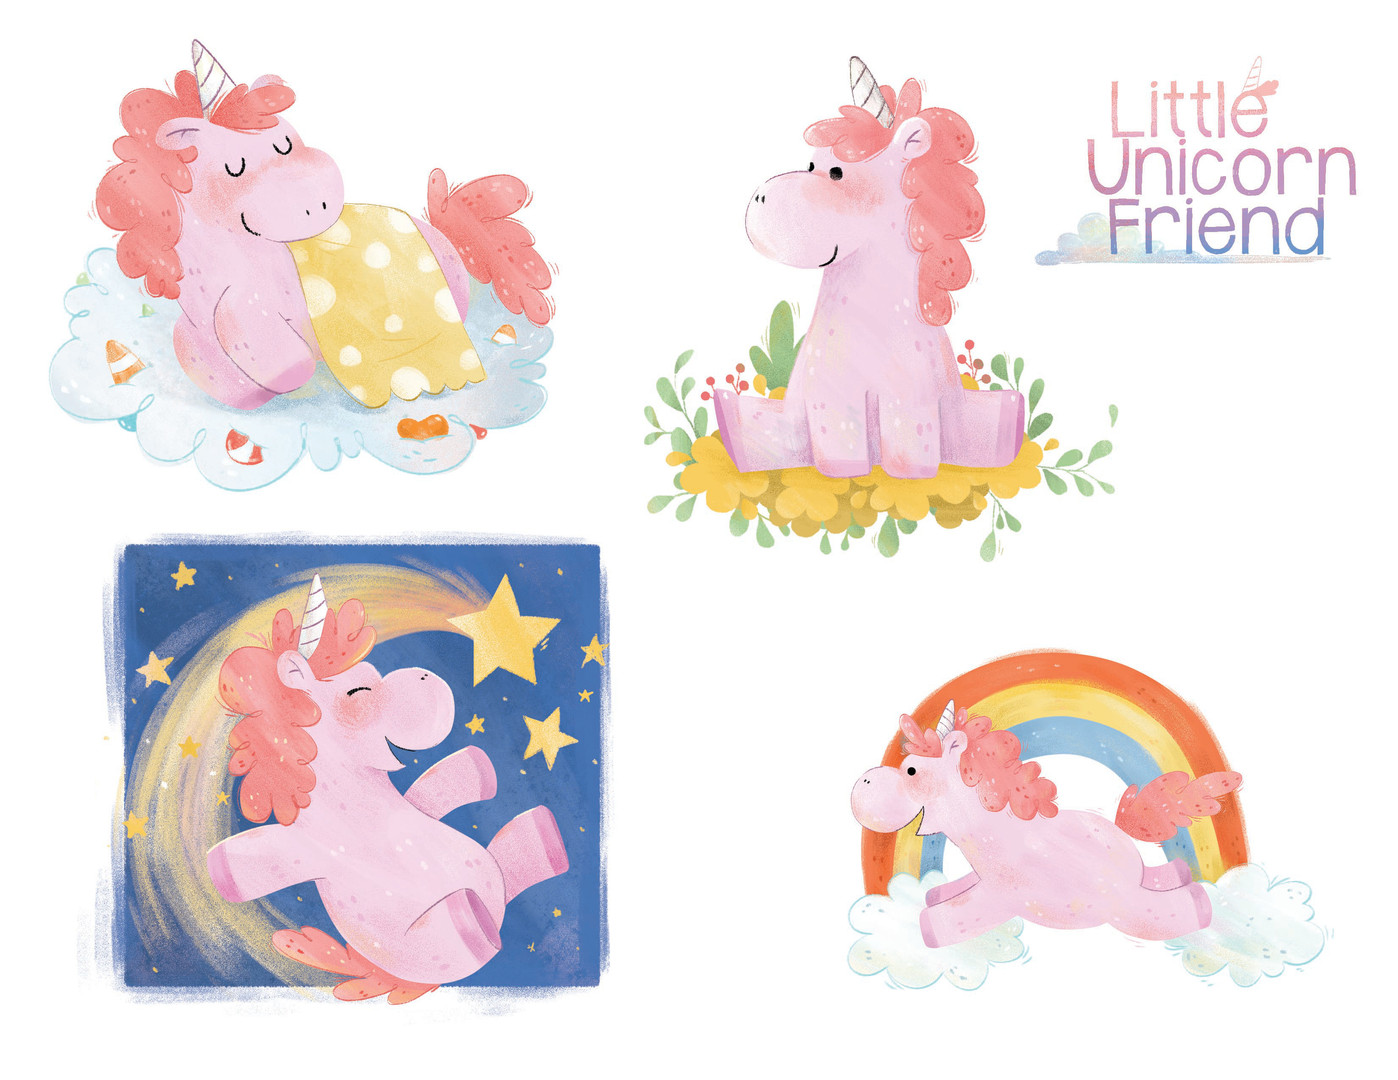 Little unicorn friend